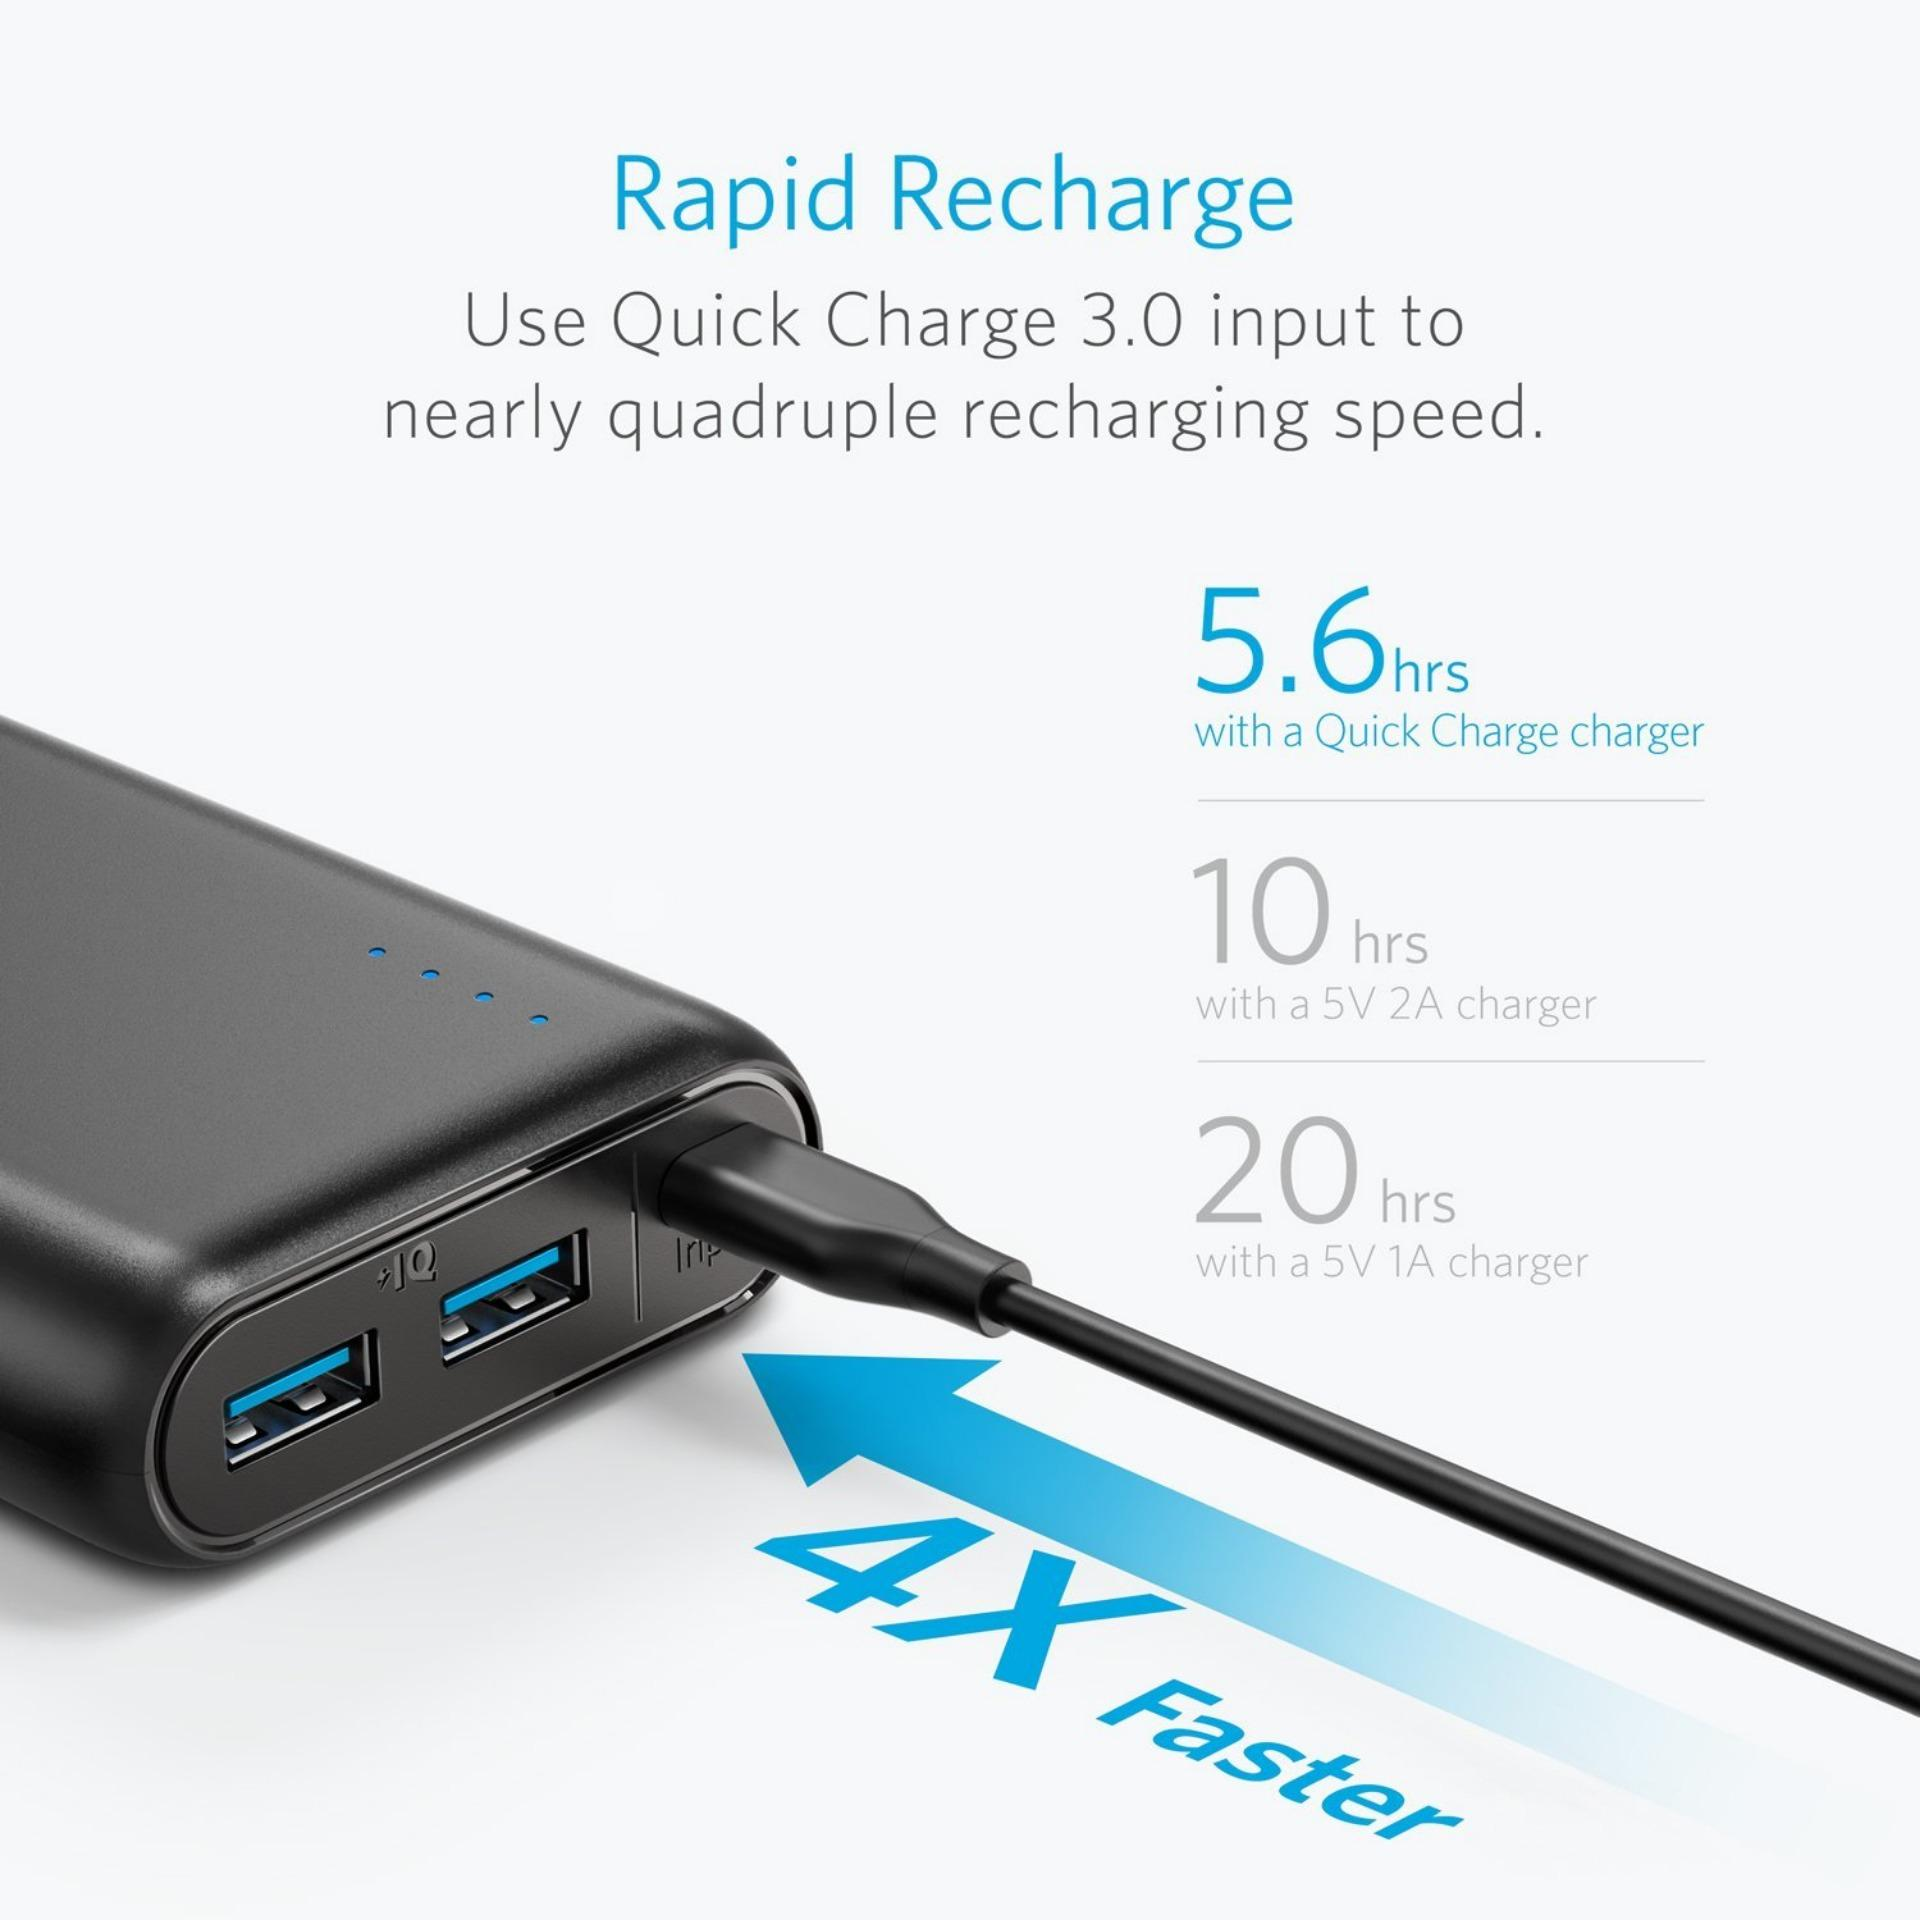 [Upgraded] Anker PowerCore Speed 20000mAh Quick Charge 3.0 Portable Powerbank